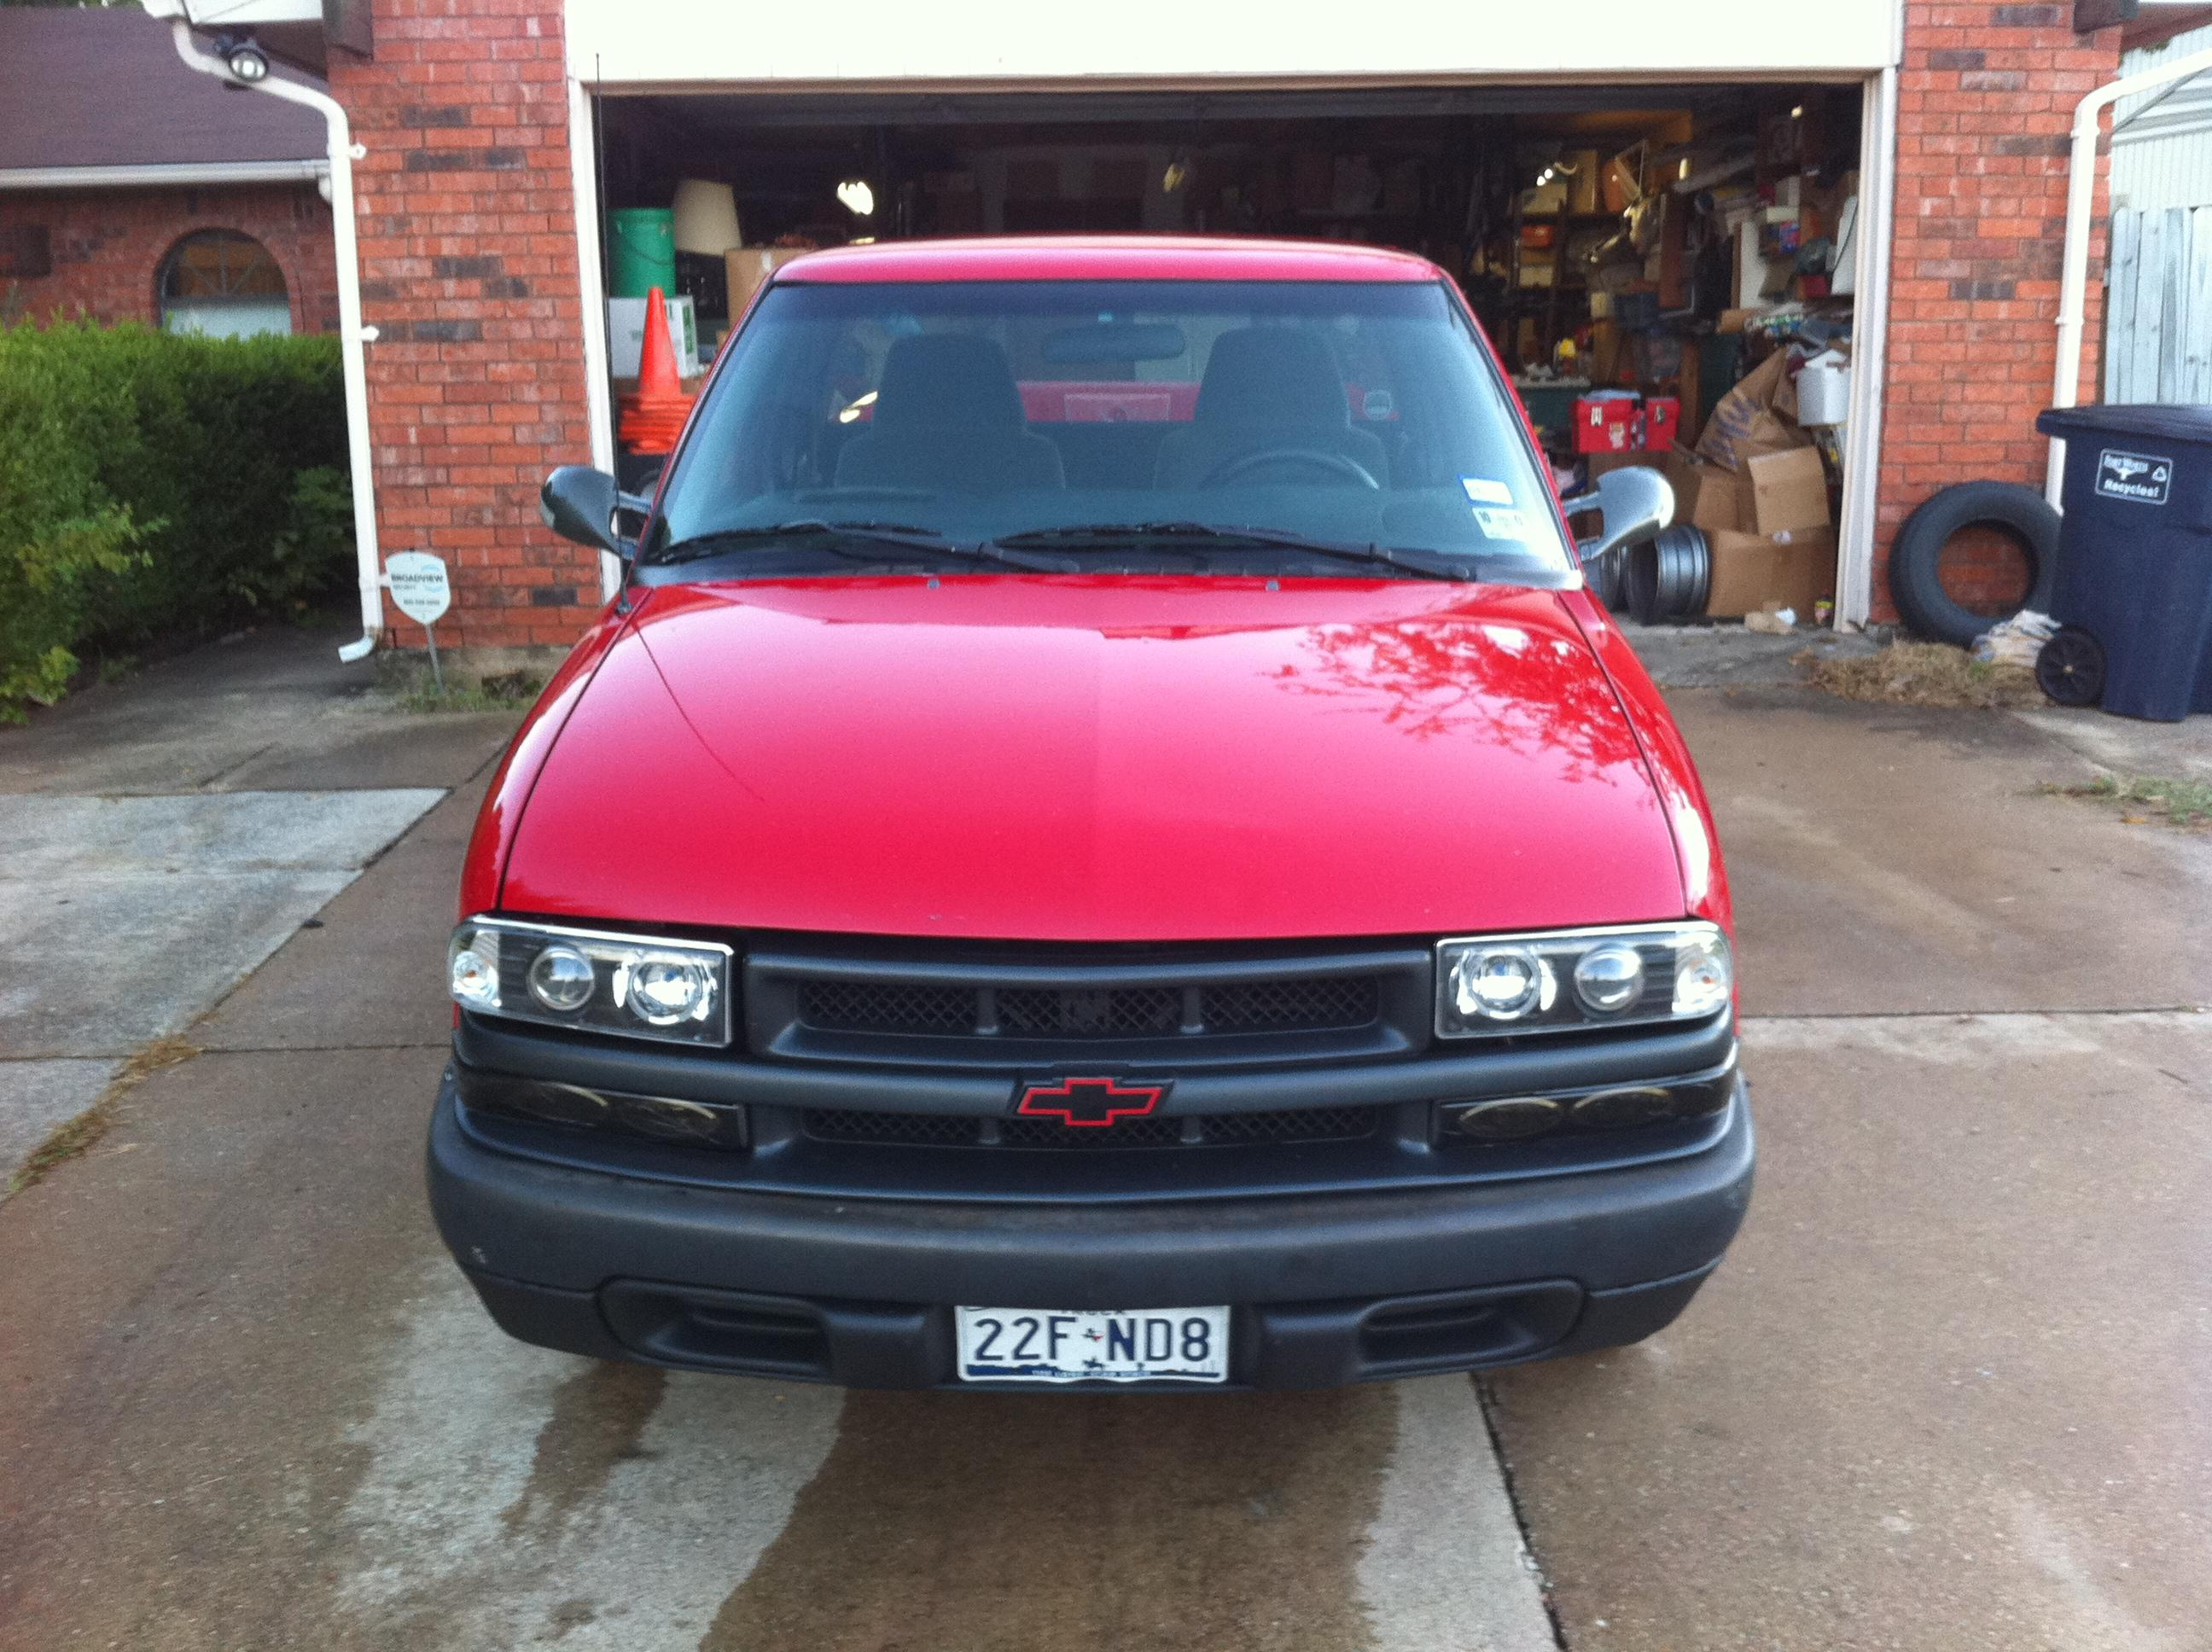 david_me92 2001 Chevrolet S10 Extended Cab